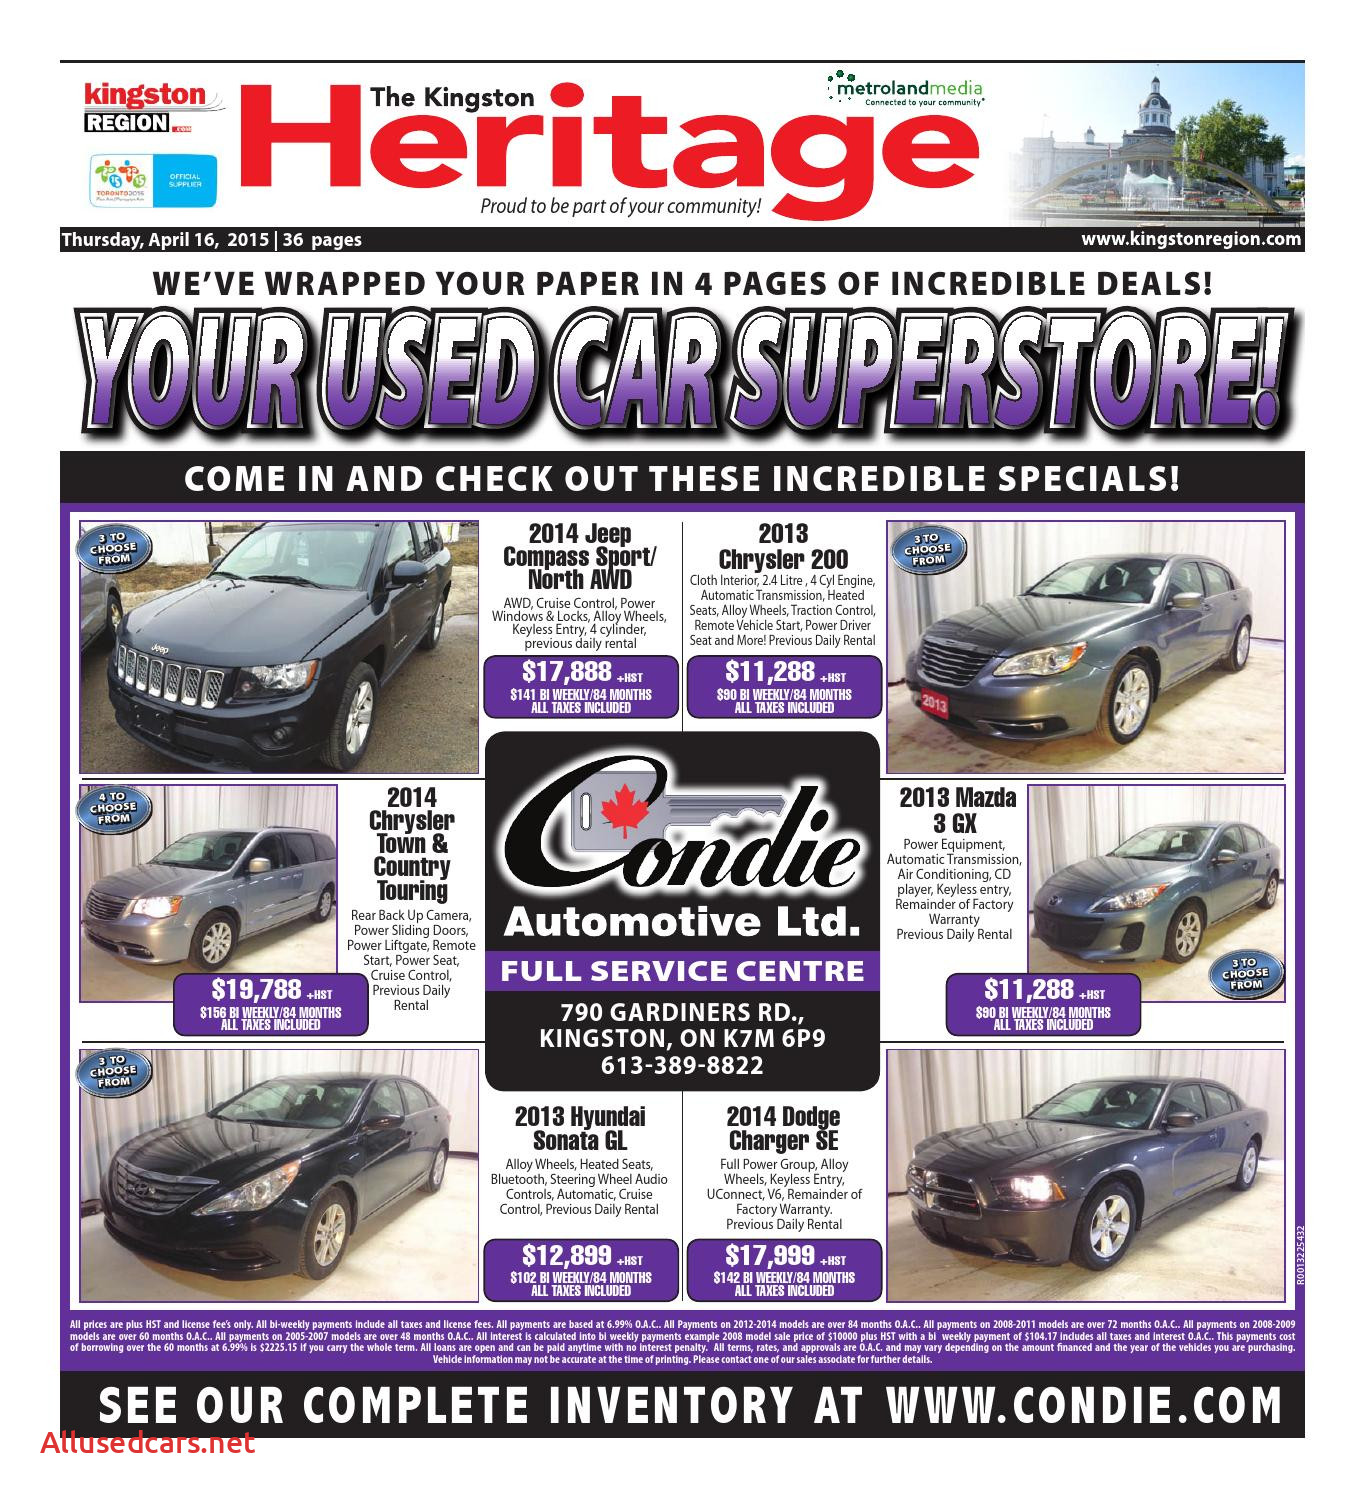 2011 Buick Enclave Luxury Kingston by Metroland East Kingston Heritage Real